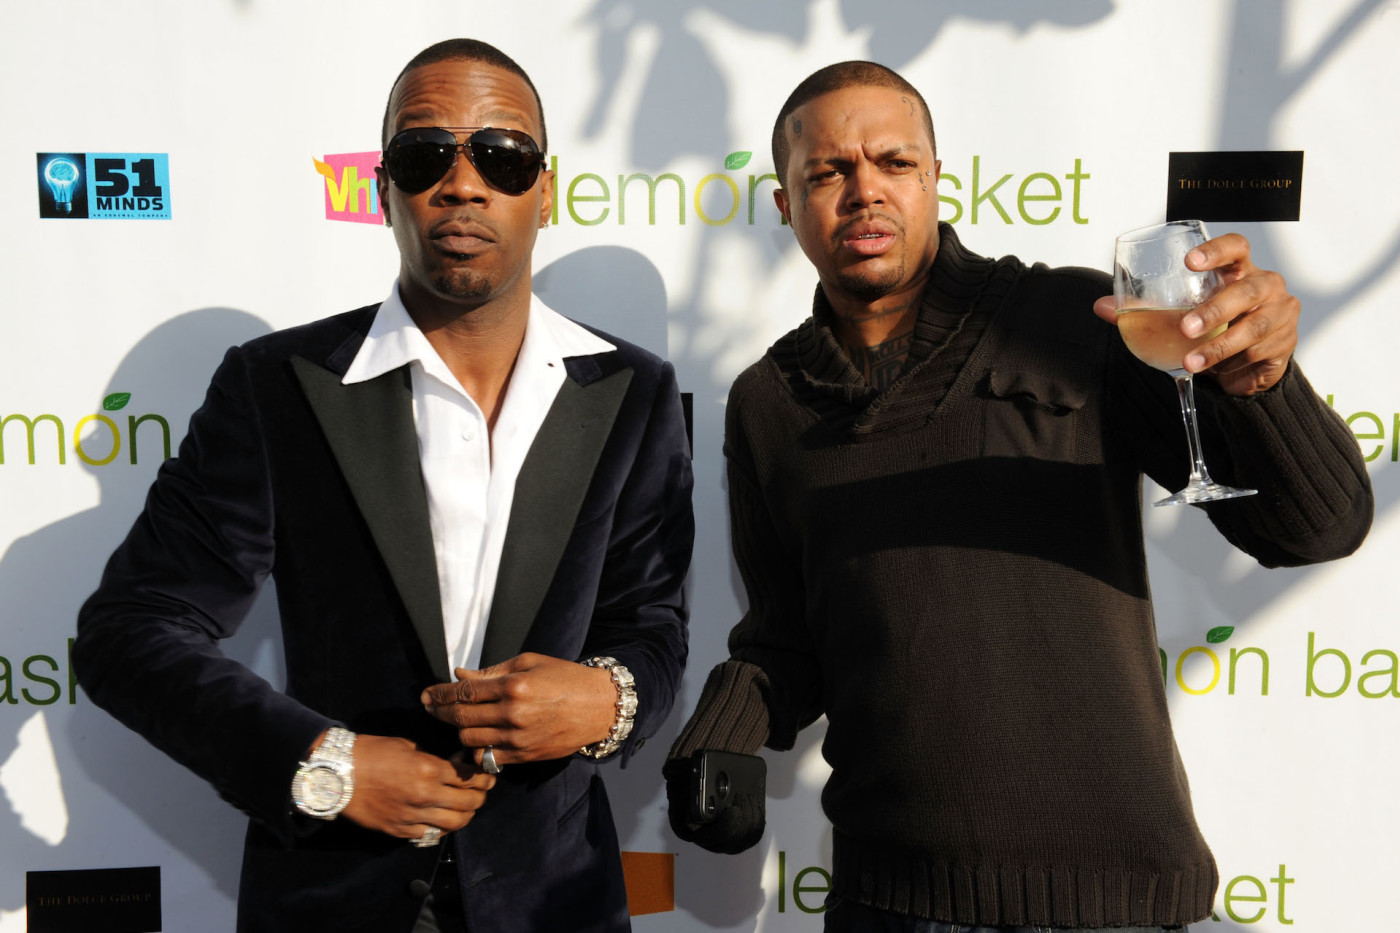 Juicy J and DJ Paul of Three 6 Mafia arrive at the grand opening of Lemon Basket restaurant.